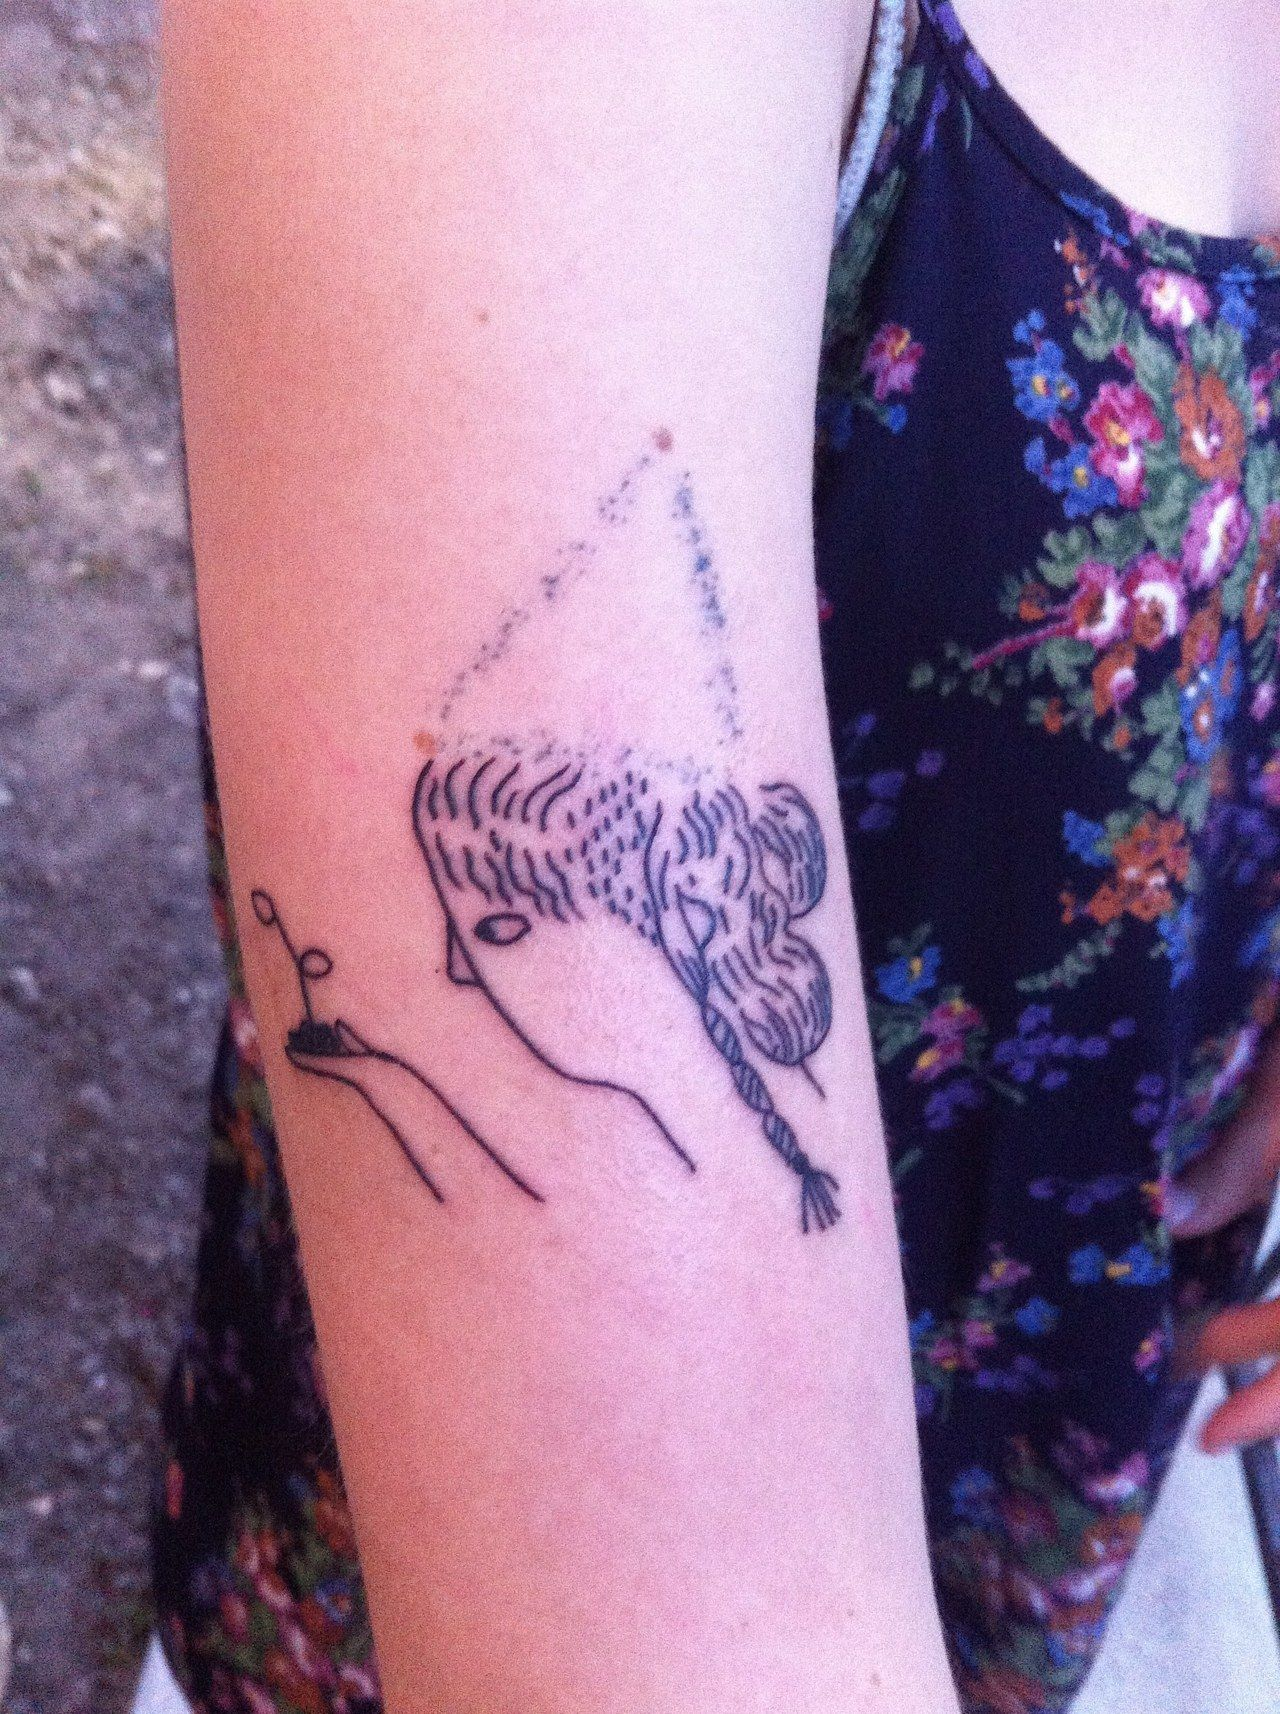 stick and poke tattoo (With images)   Tattoos, Diy tattoo ...